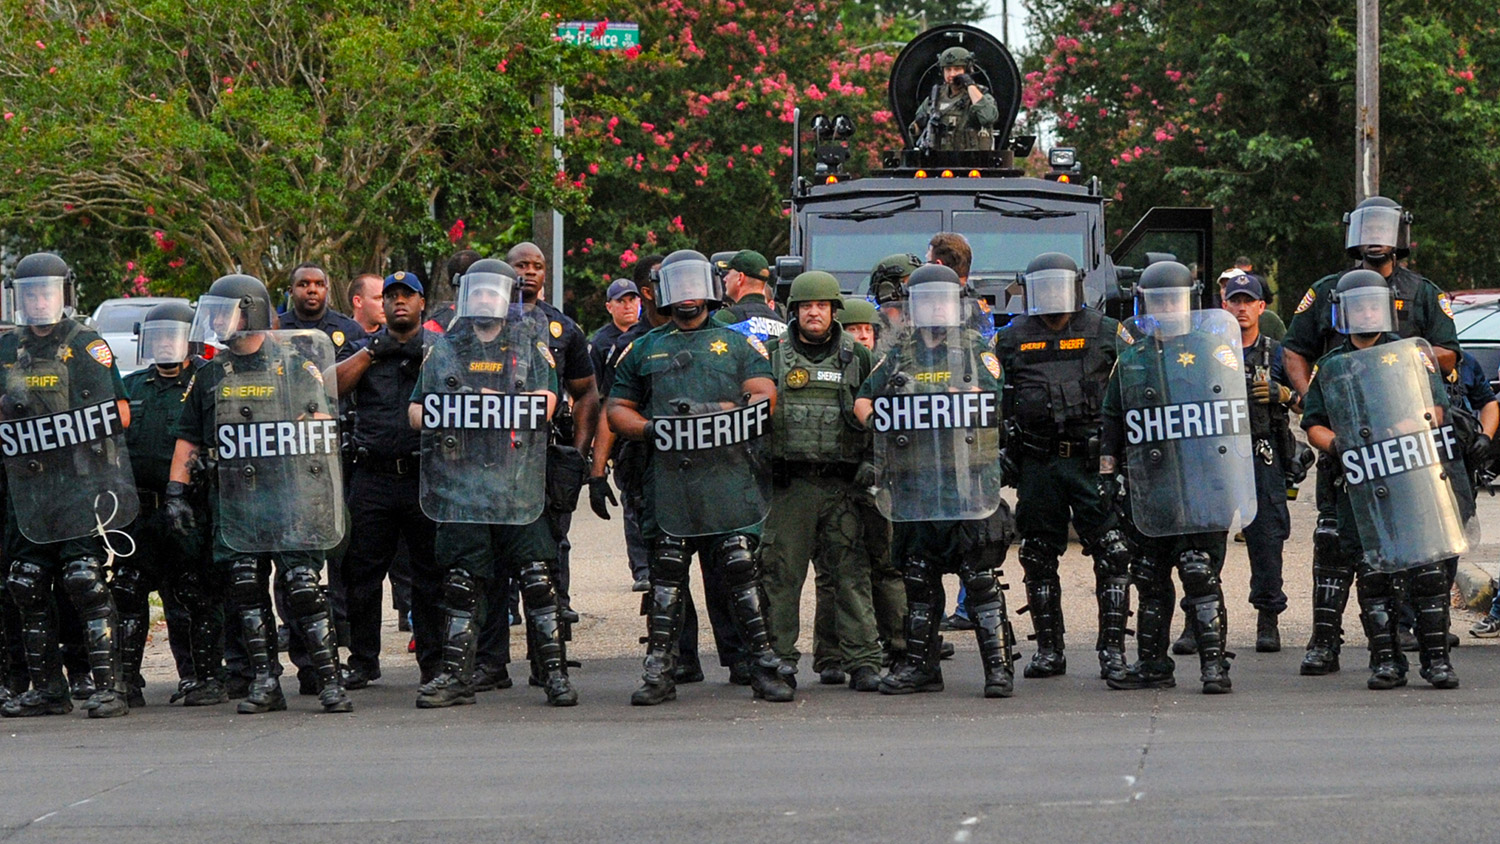 Police officers watch protesters gathering against another group of protesters in Baton Rouge, La.